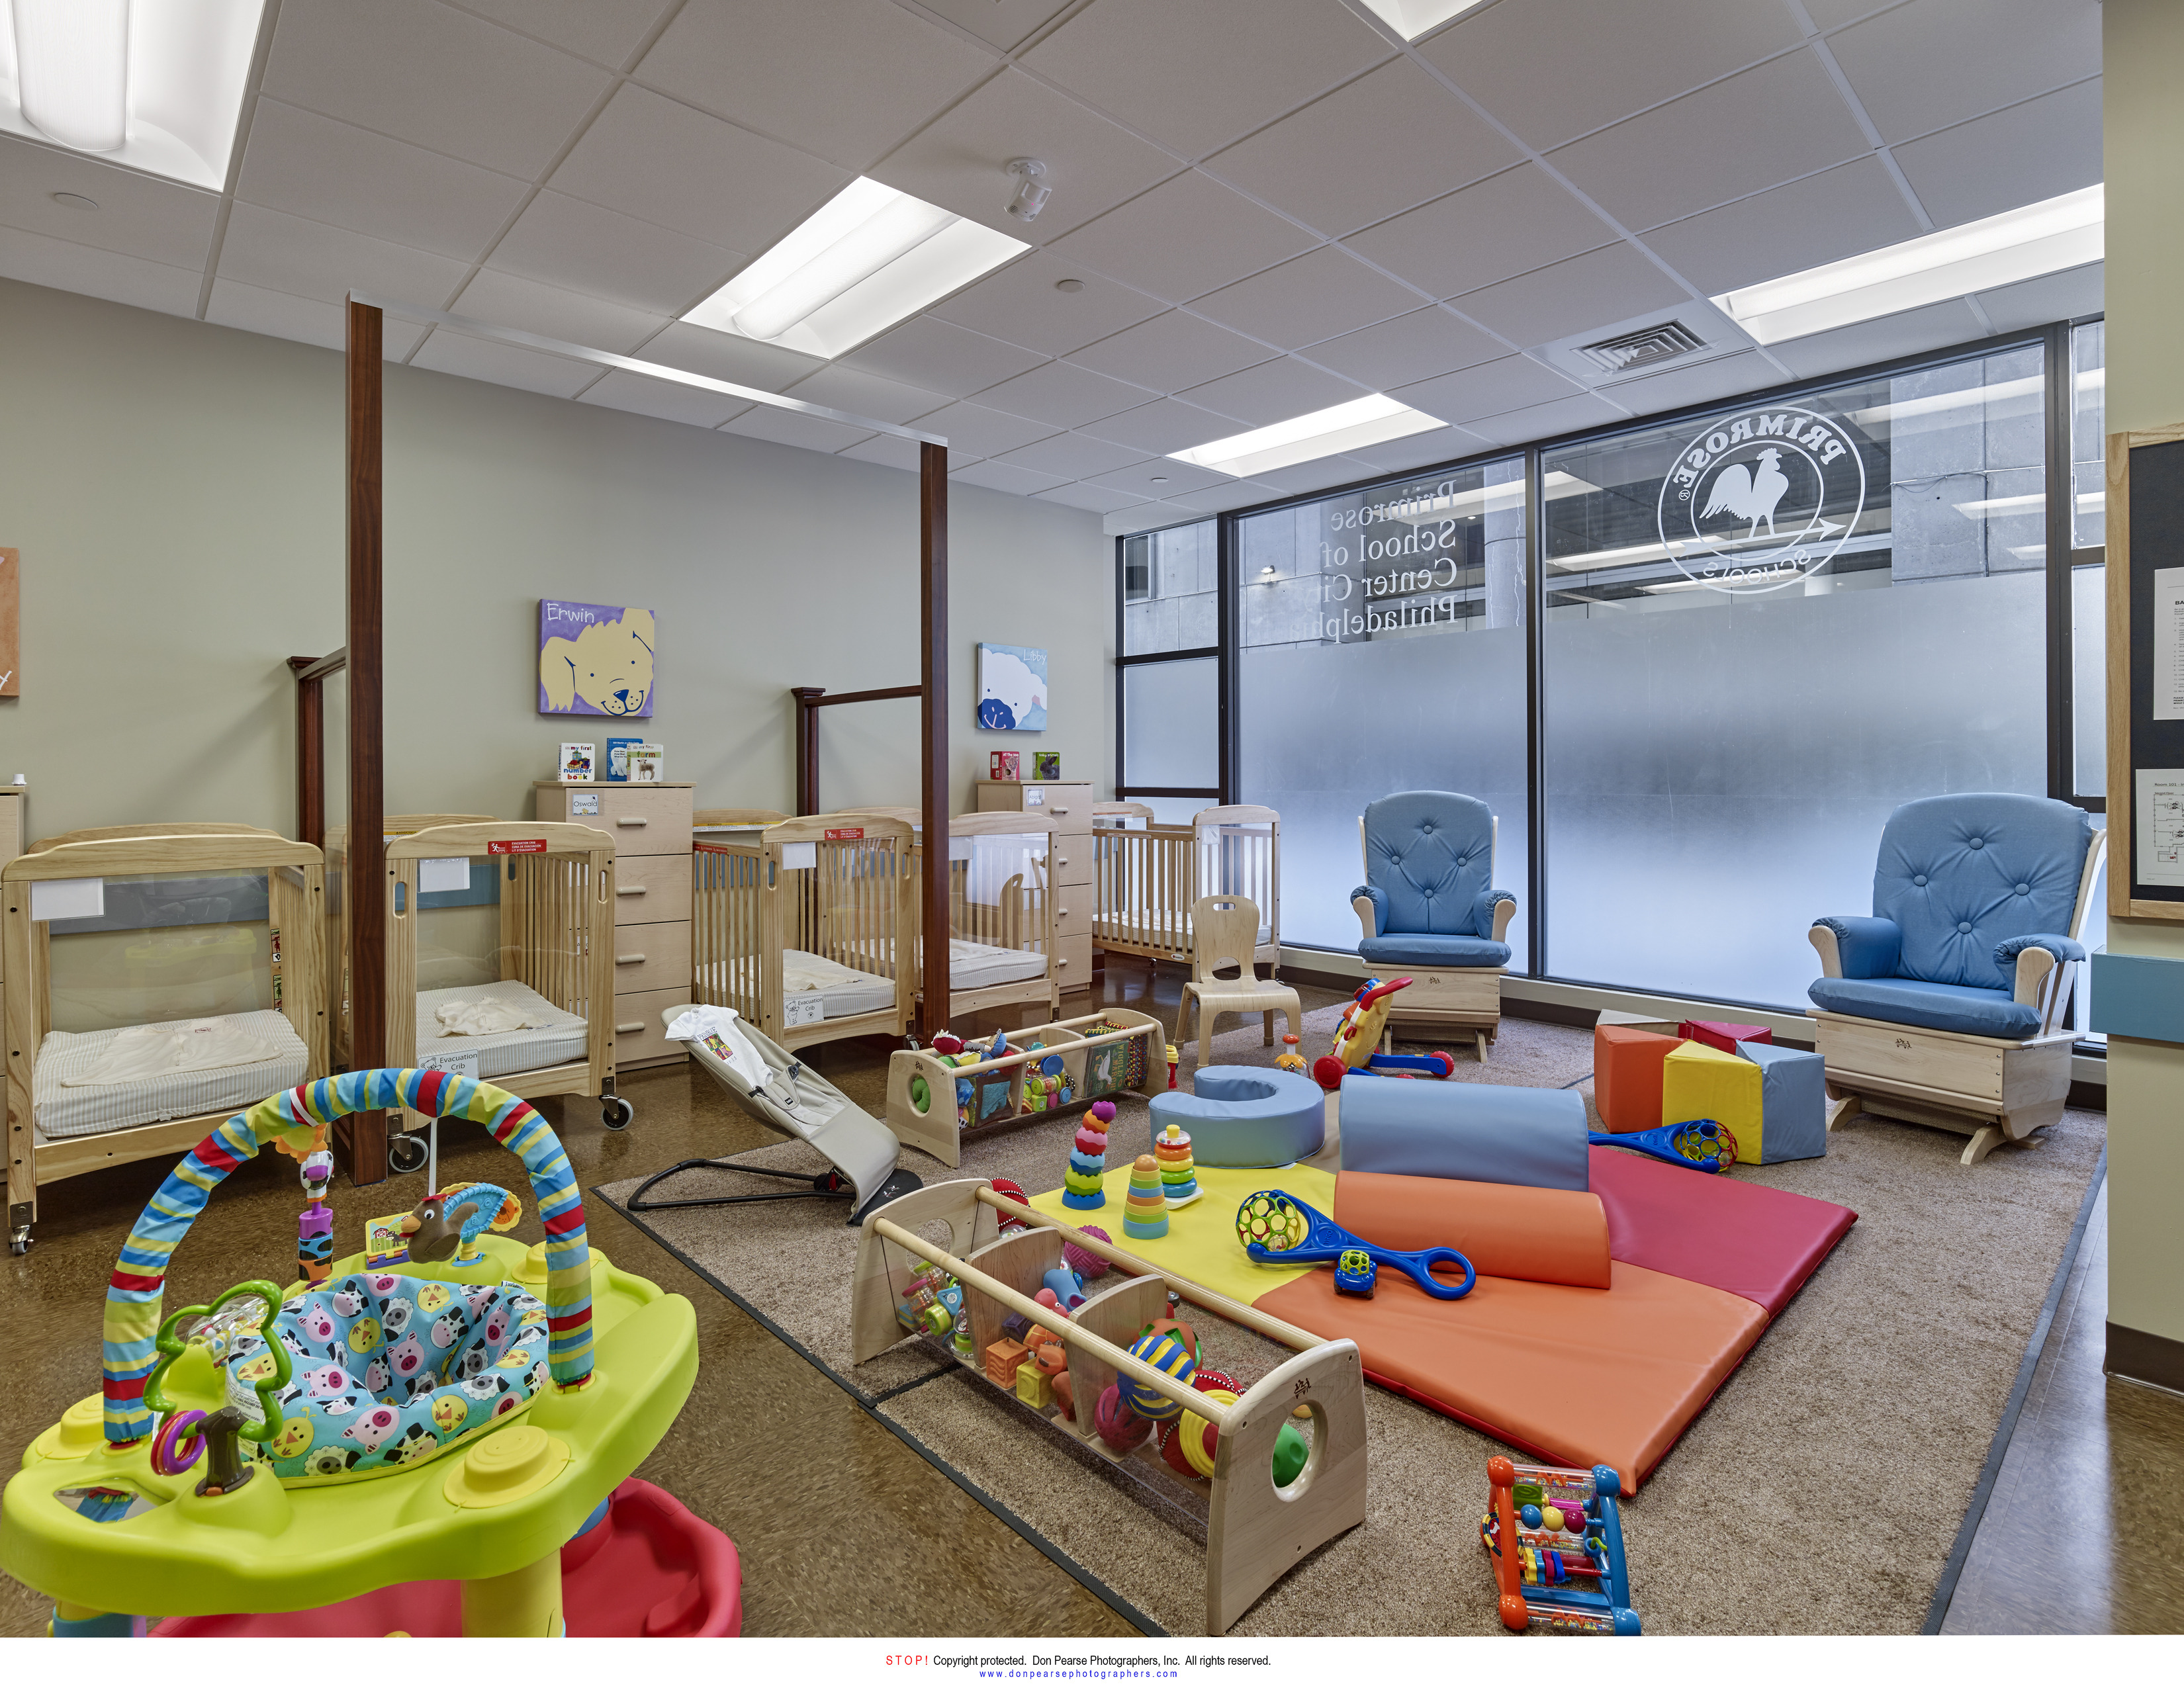 Interior of the infant room at Primrose school of Center City Philadelphia